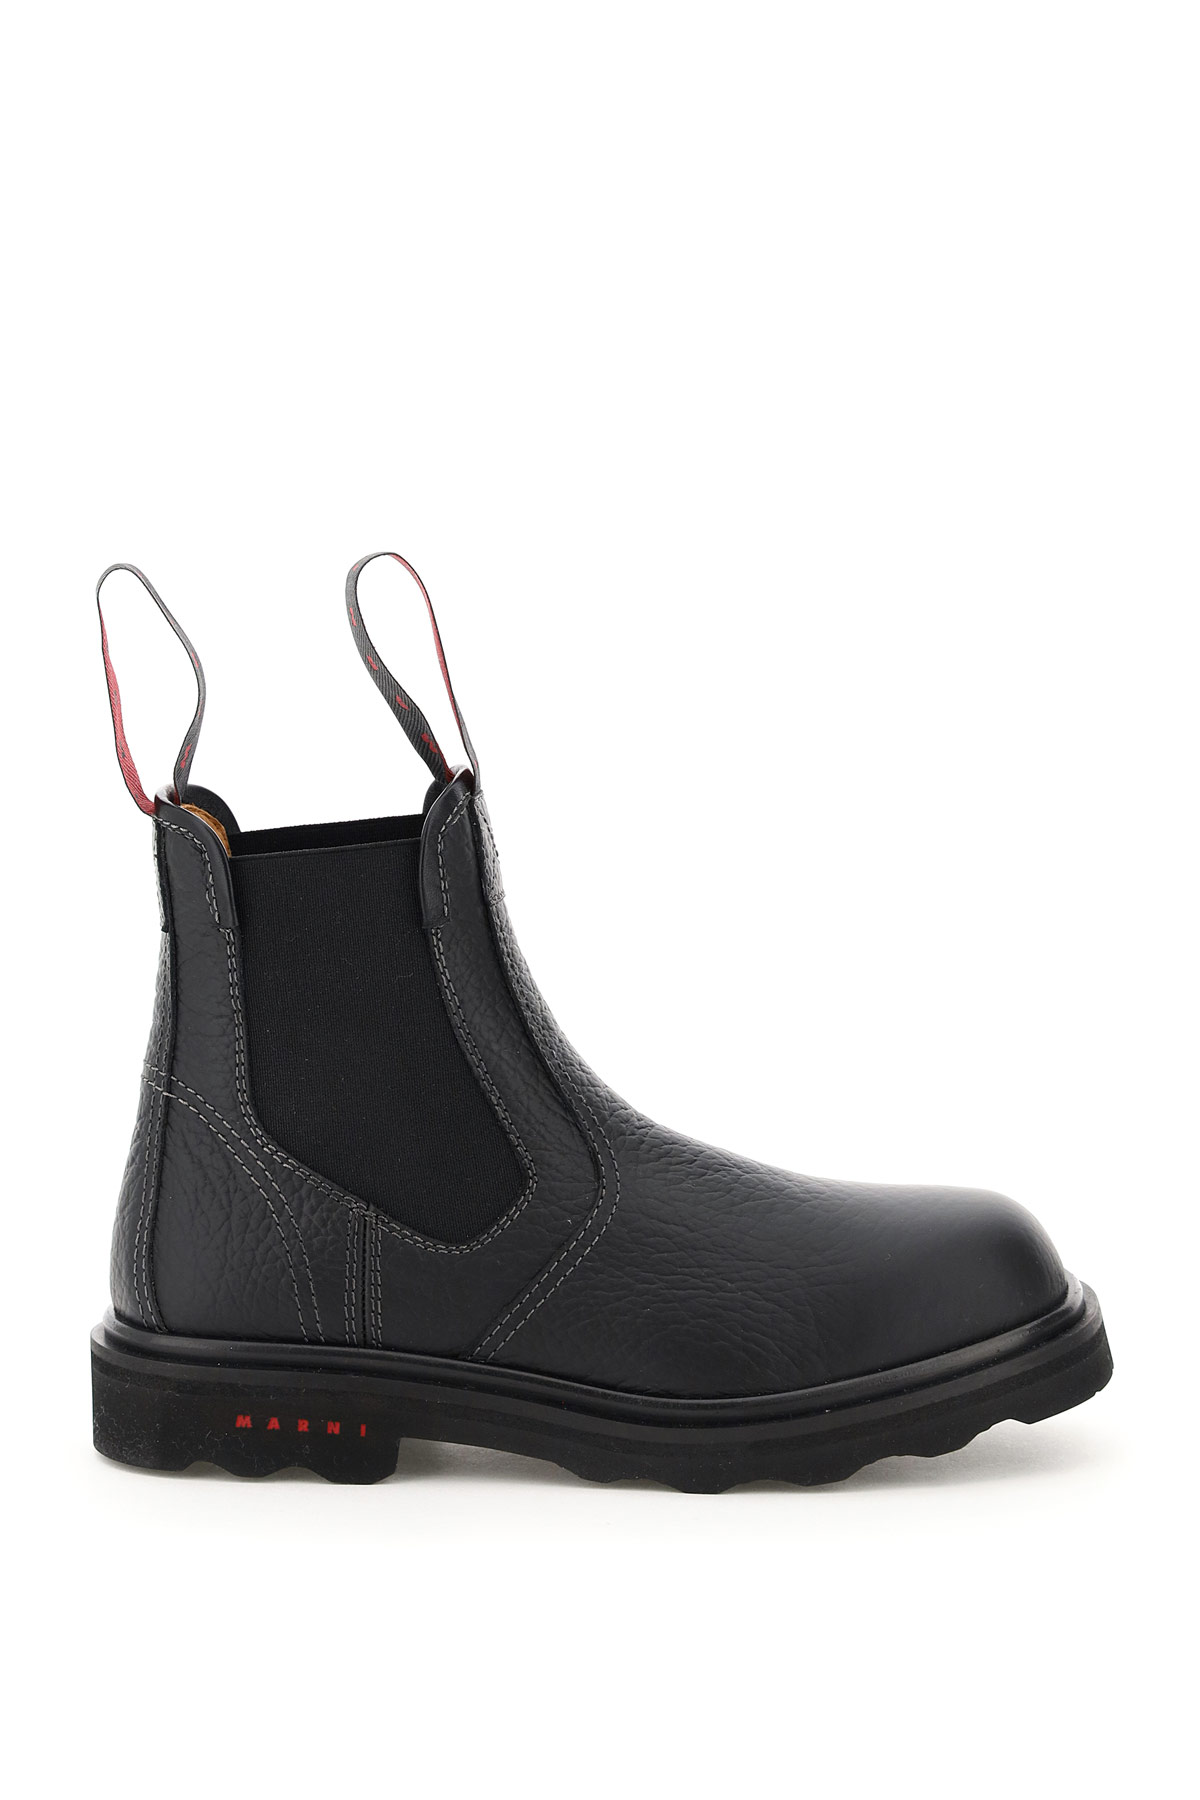 MARNI EMBOSSED LEATHER CHELSEA BOOTS 40 Black Leather